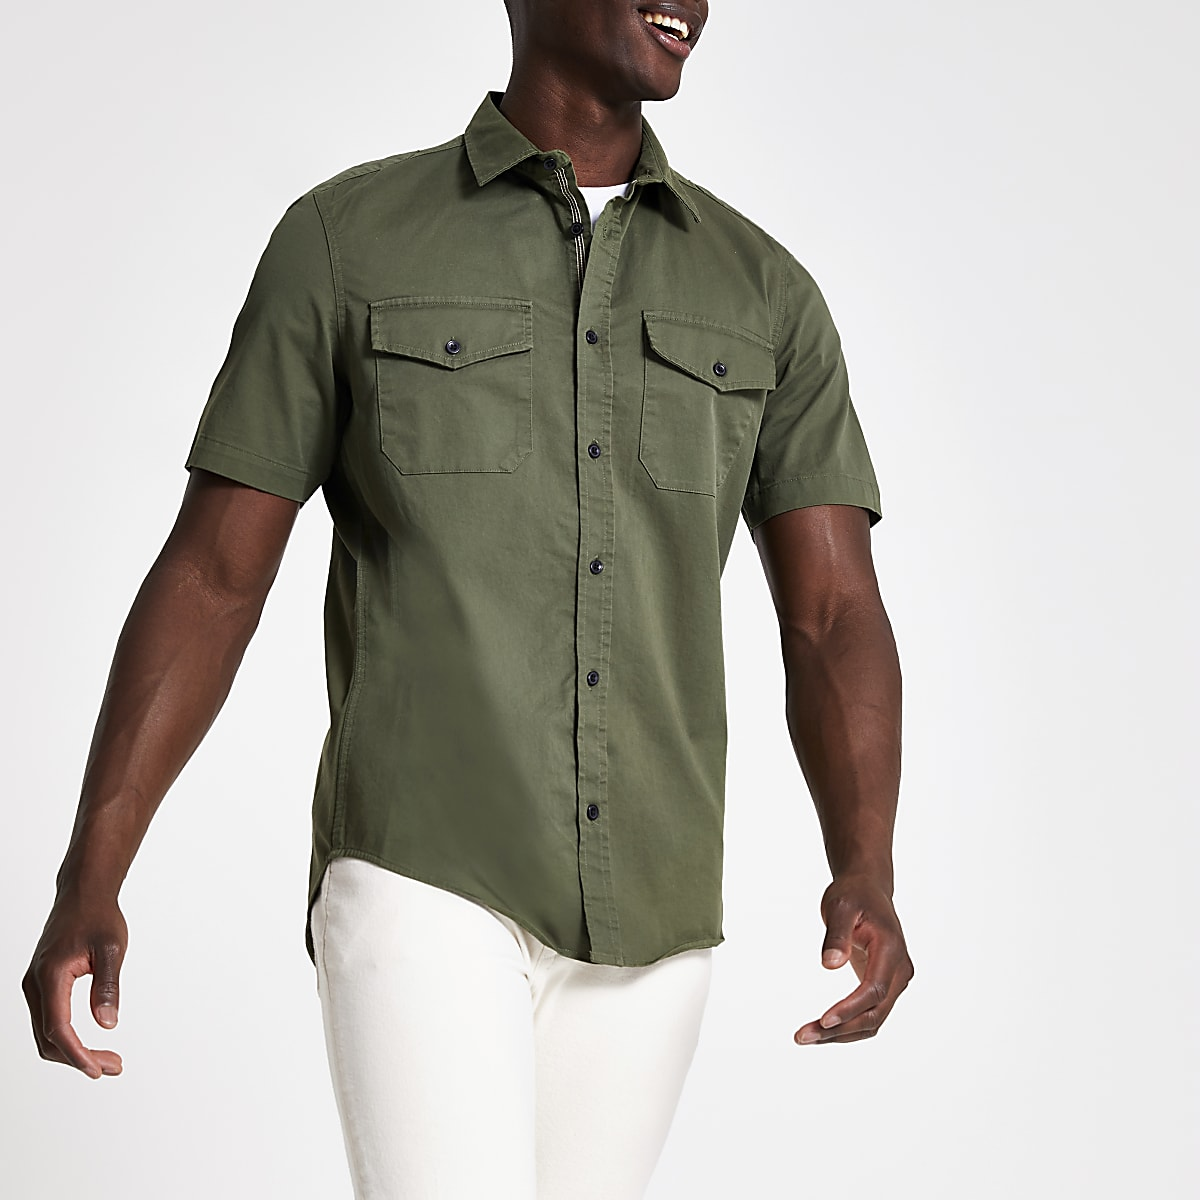 Khaki regular fit short sleeve utility shirt